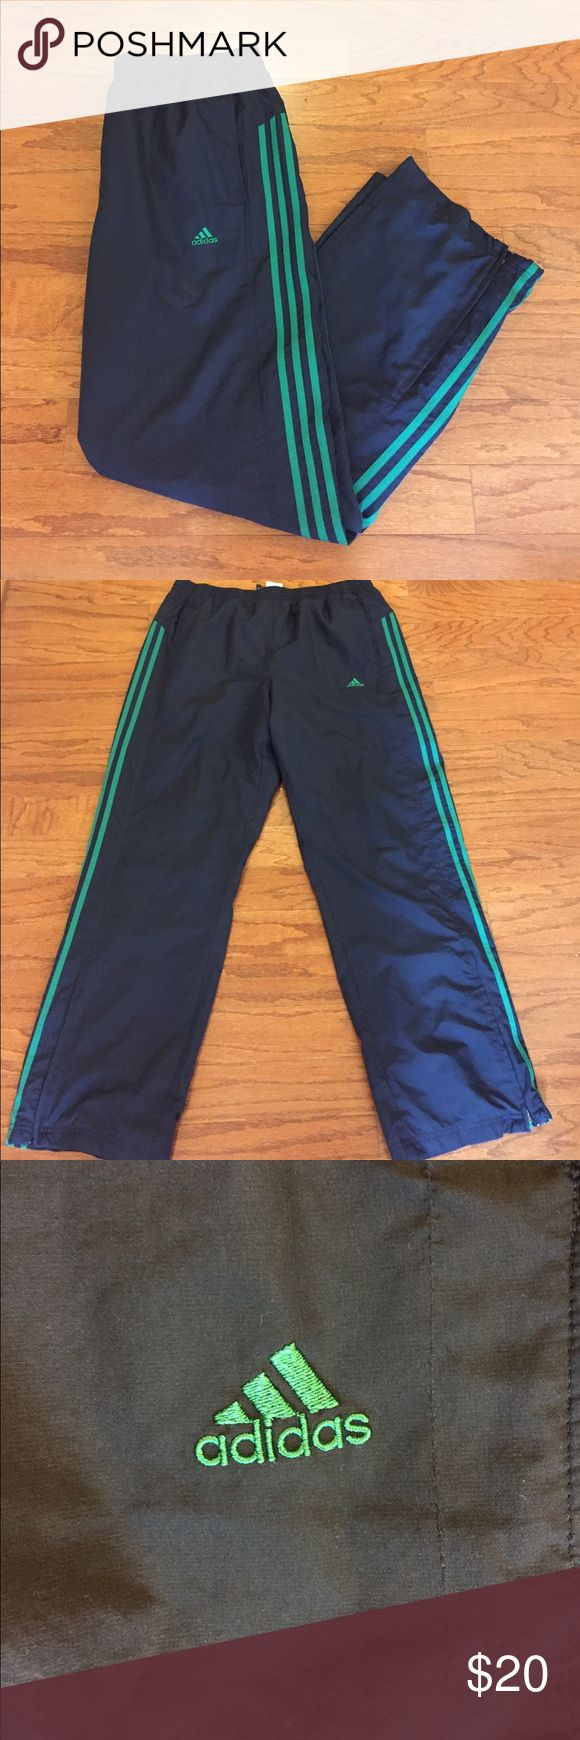 "Adidas ""ClimaProof"" Windbreaker Pants Very good condition, gently worn, dark blue and green color, 100% lightweight polyester material, made of ClimaProof technology, adidas ClimaProof is designed to provide breathable weather protection in wind, rain, and snow conditions, men's size large, measures about 31 1/2"" inseam and 34"" waist...elastic waist with drawstring, very comfortable pants! adidas Pants Sweatpants & Joggers"